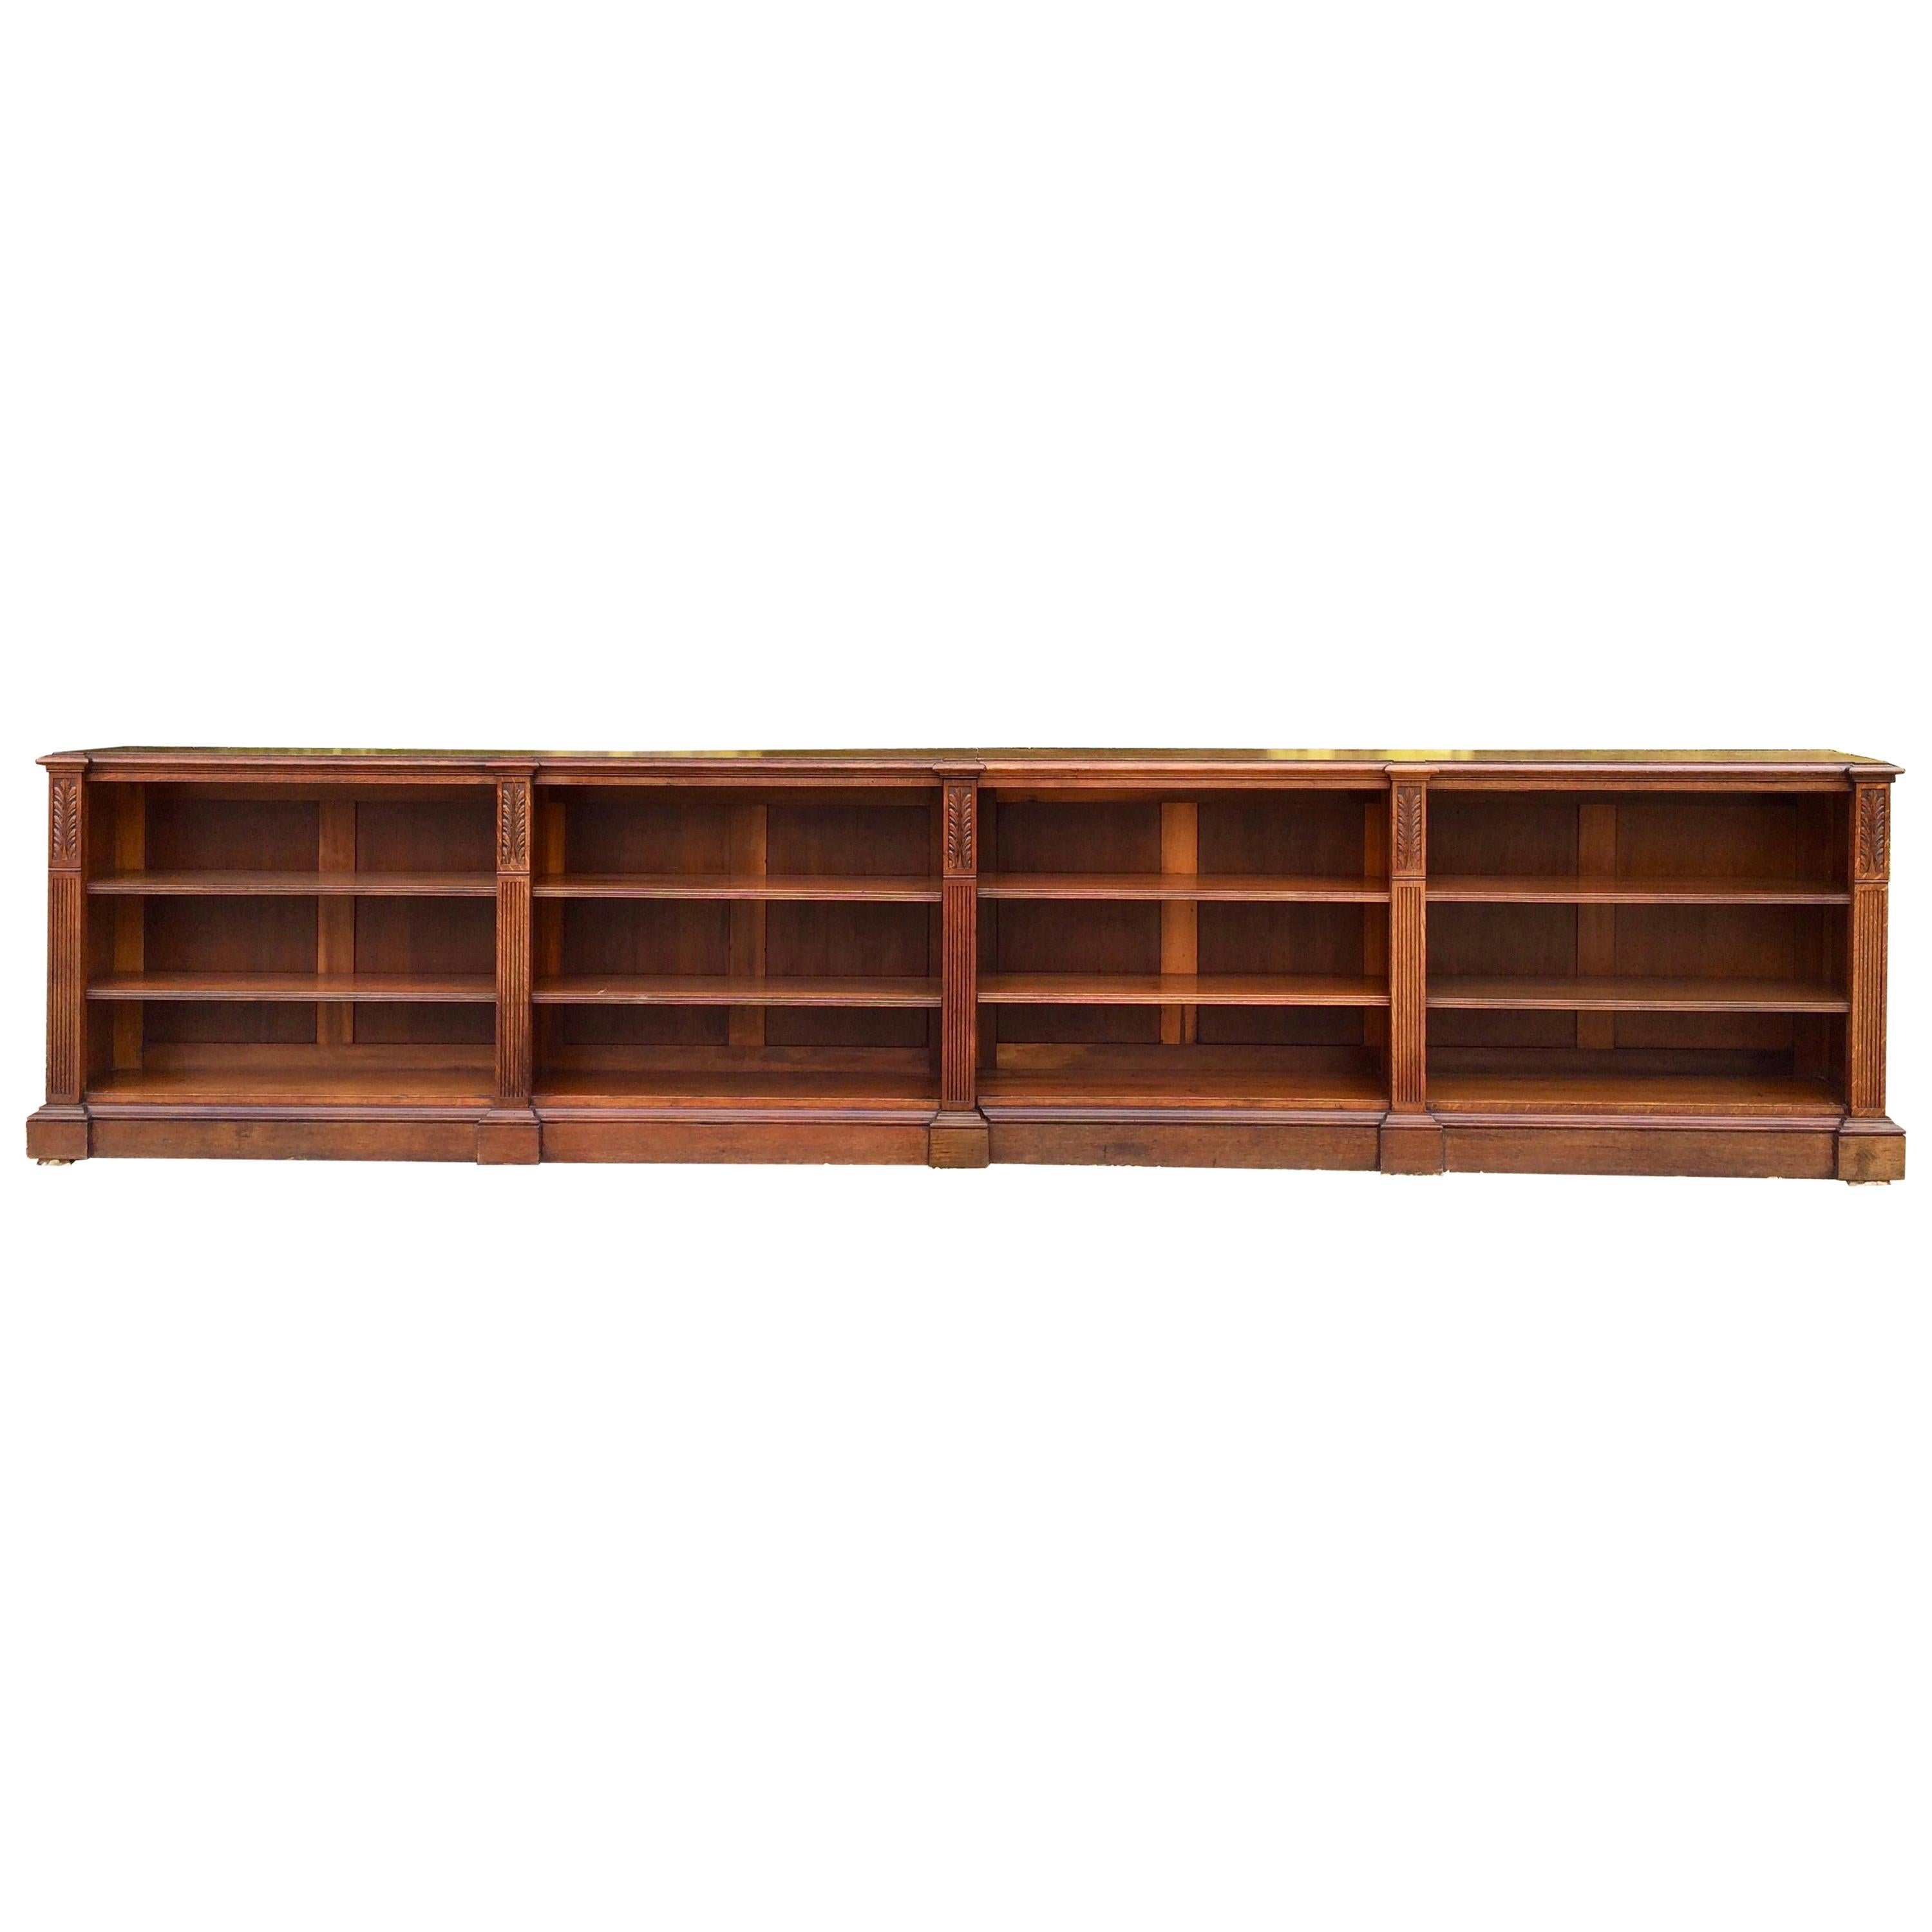 Superieur Stunning 19th Century Large Oak Bookcase Two Sections Carved Adjustable  Shelves For Sale